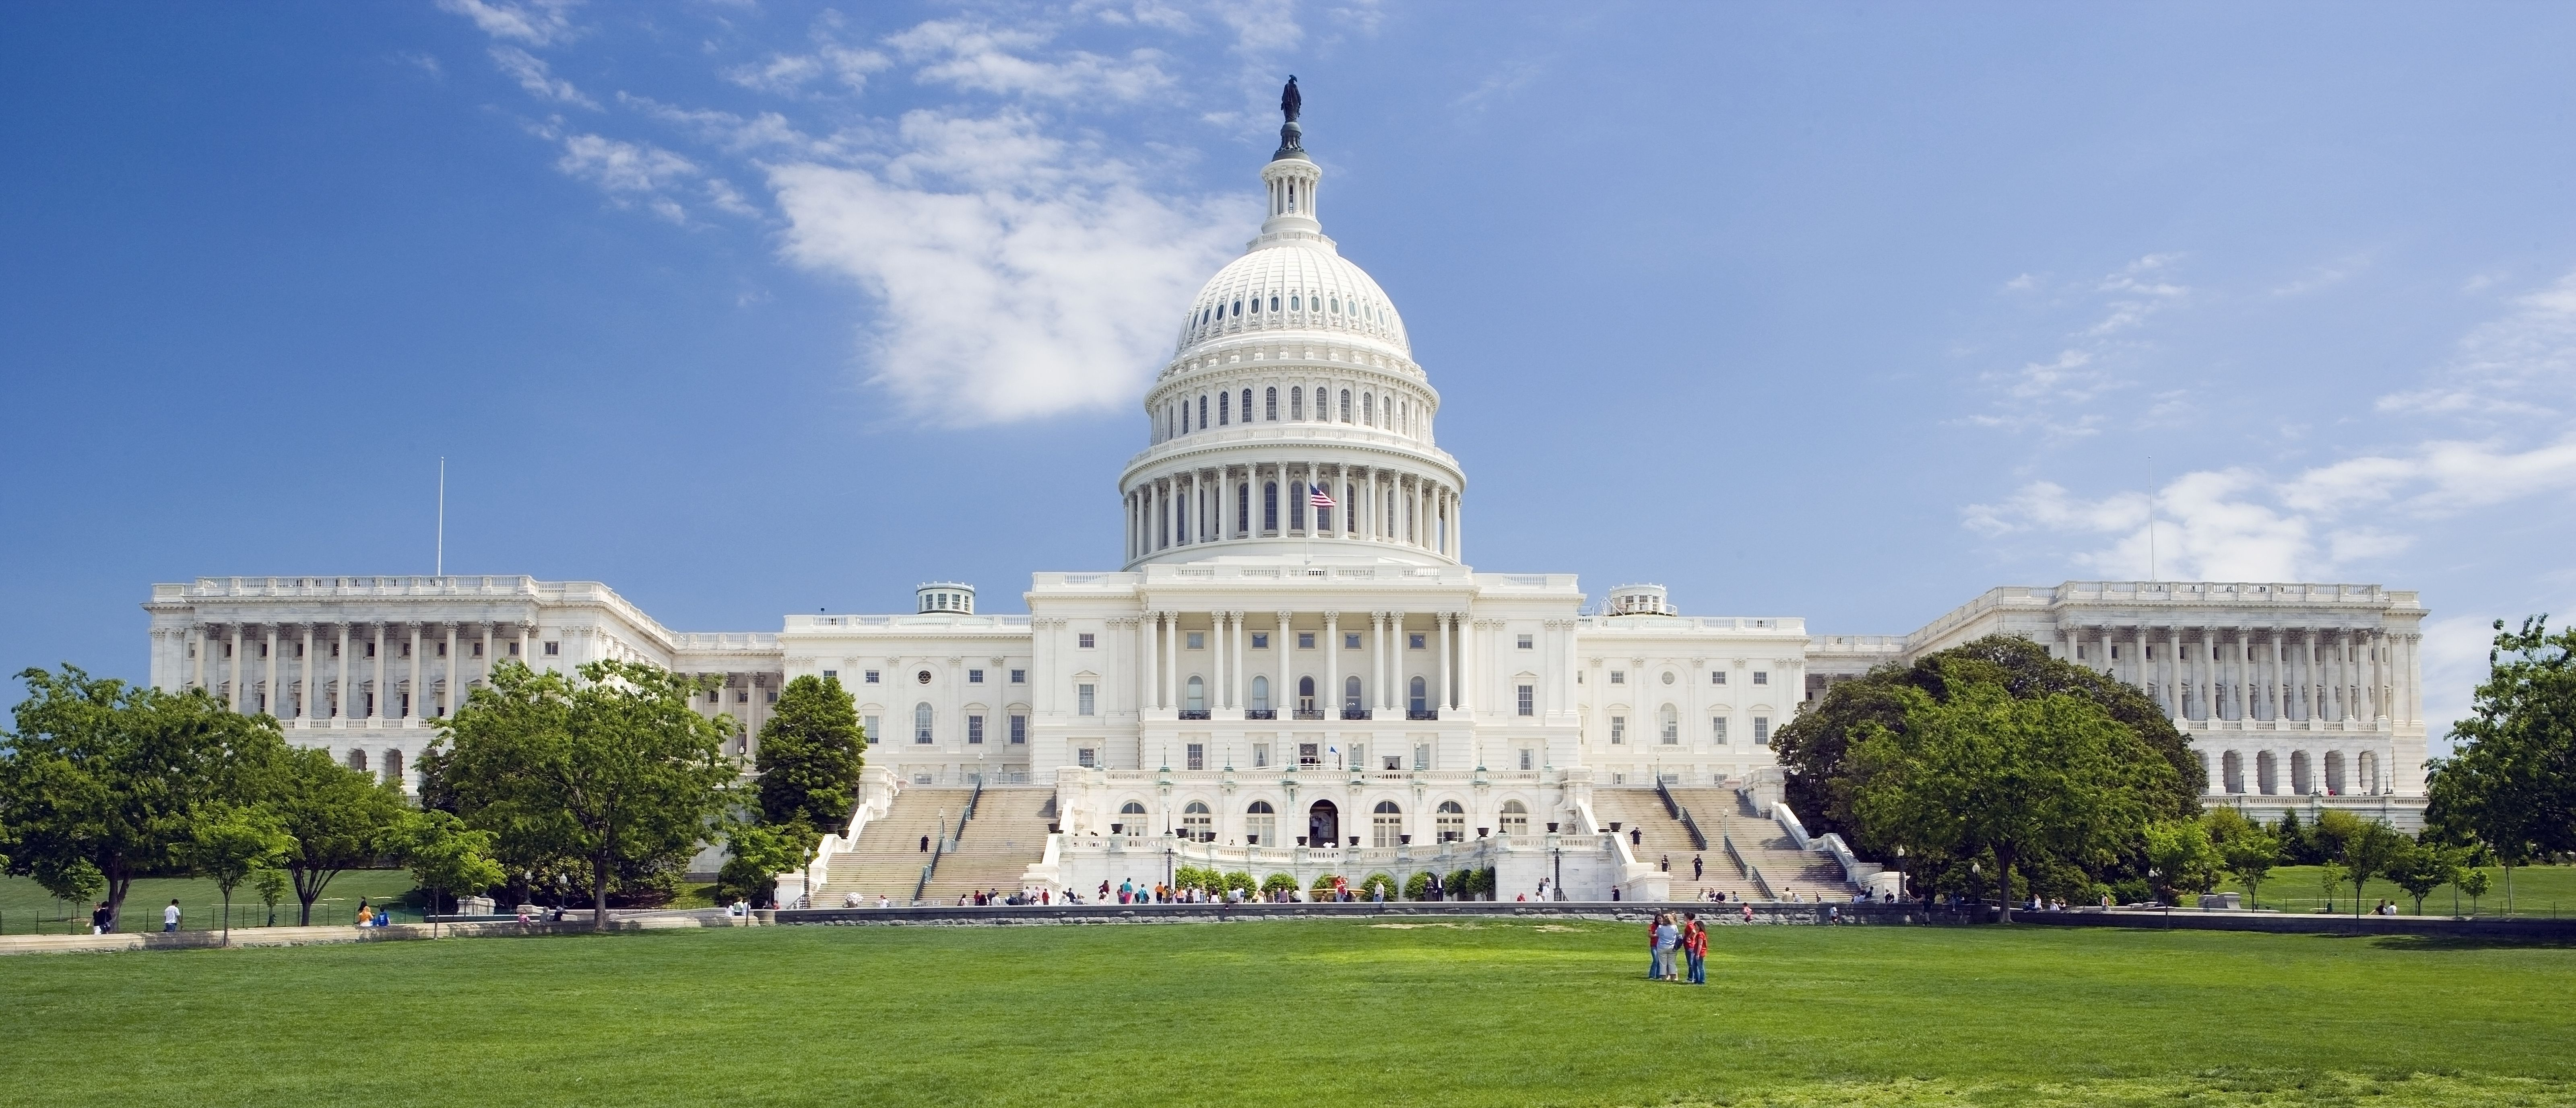 Photos Of The Us Capitol Building In Washington Dc